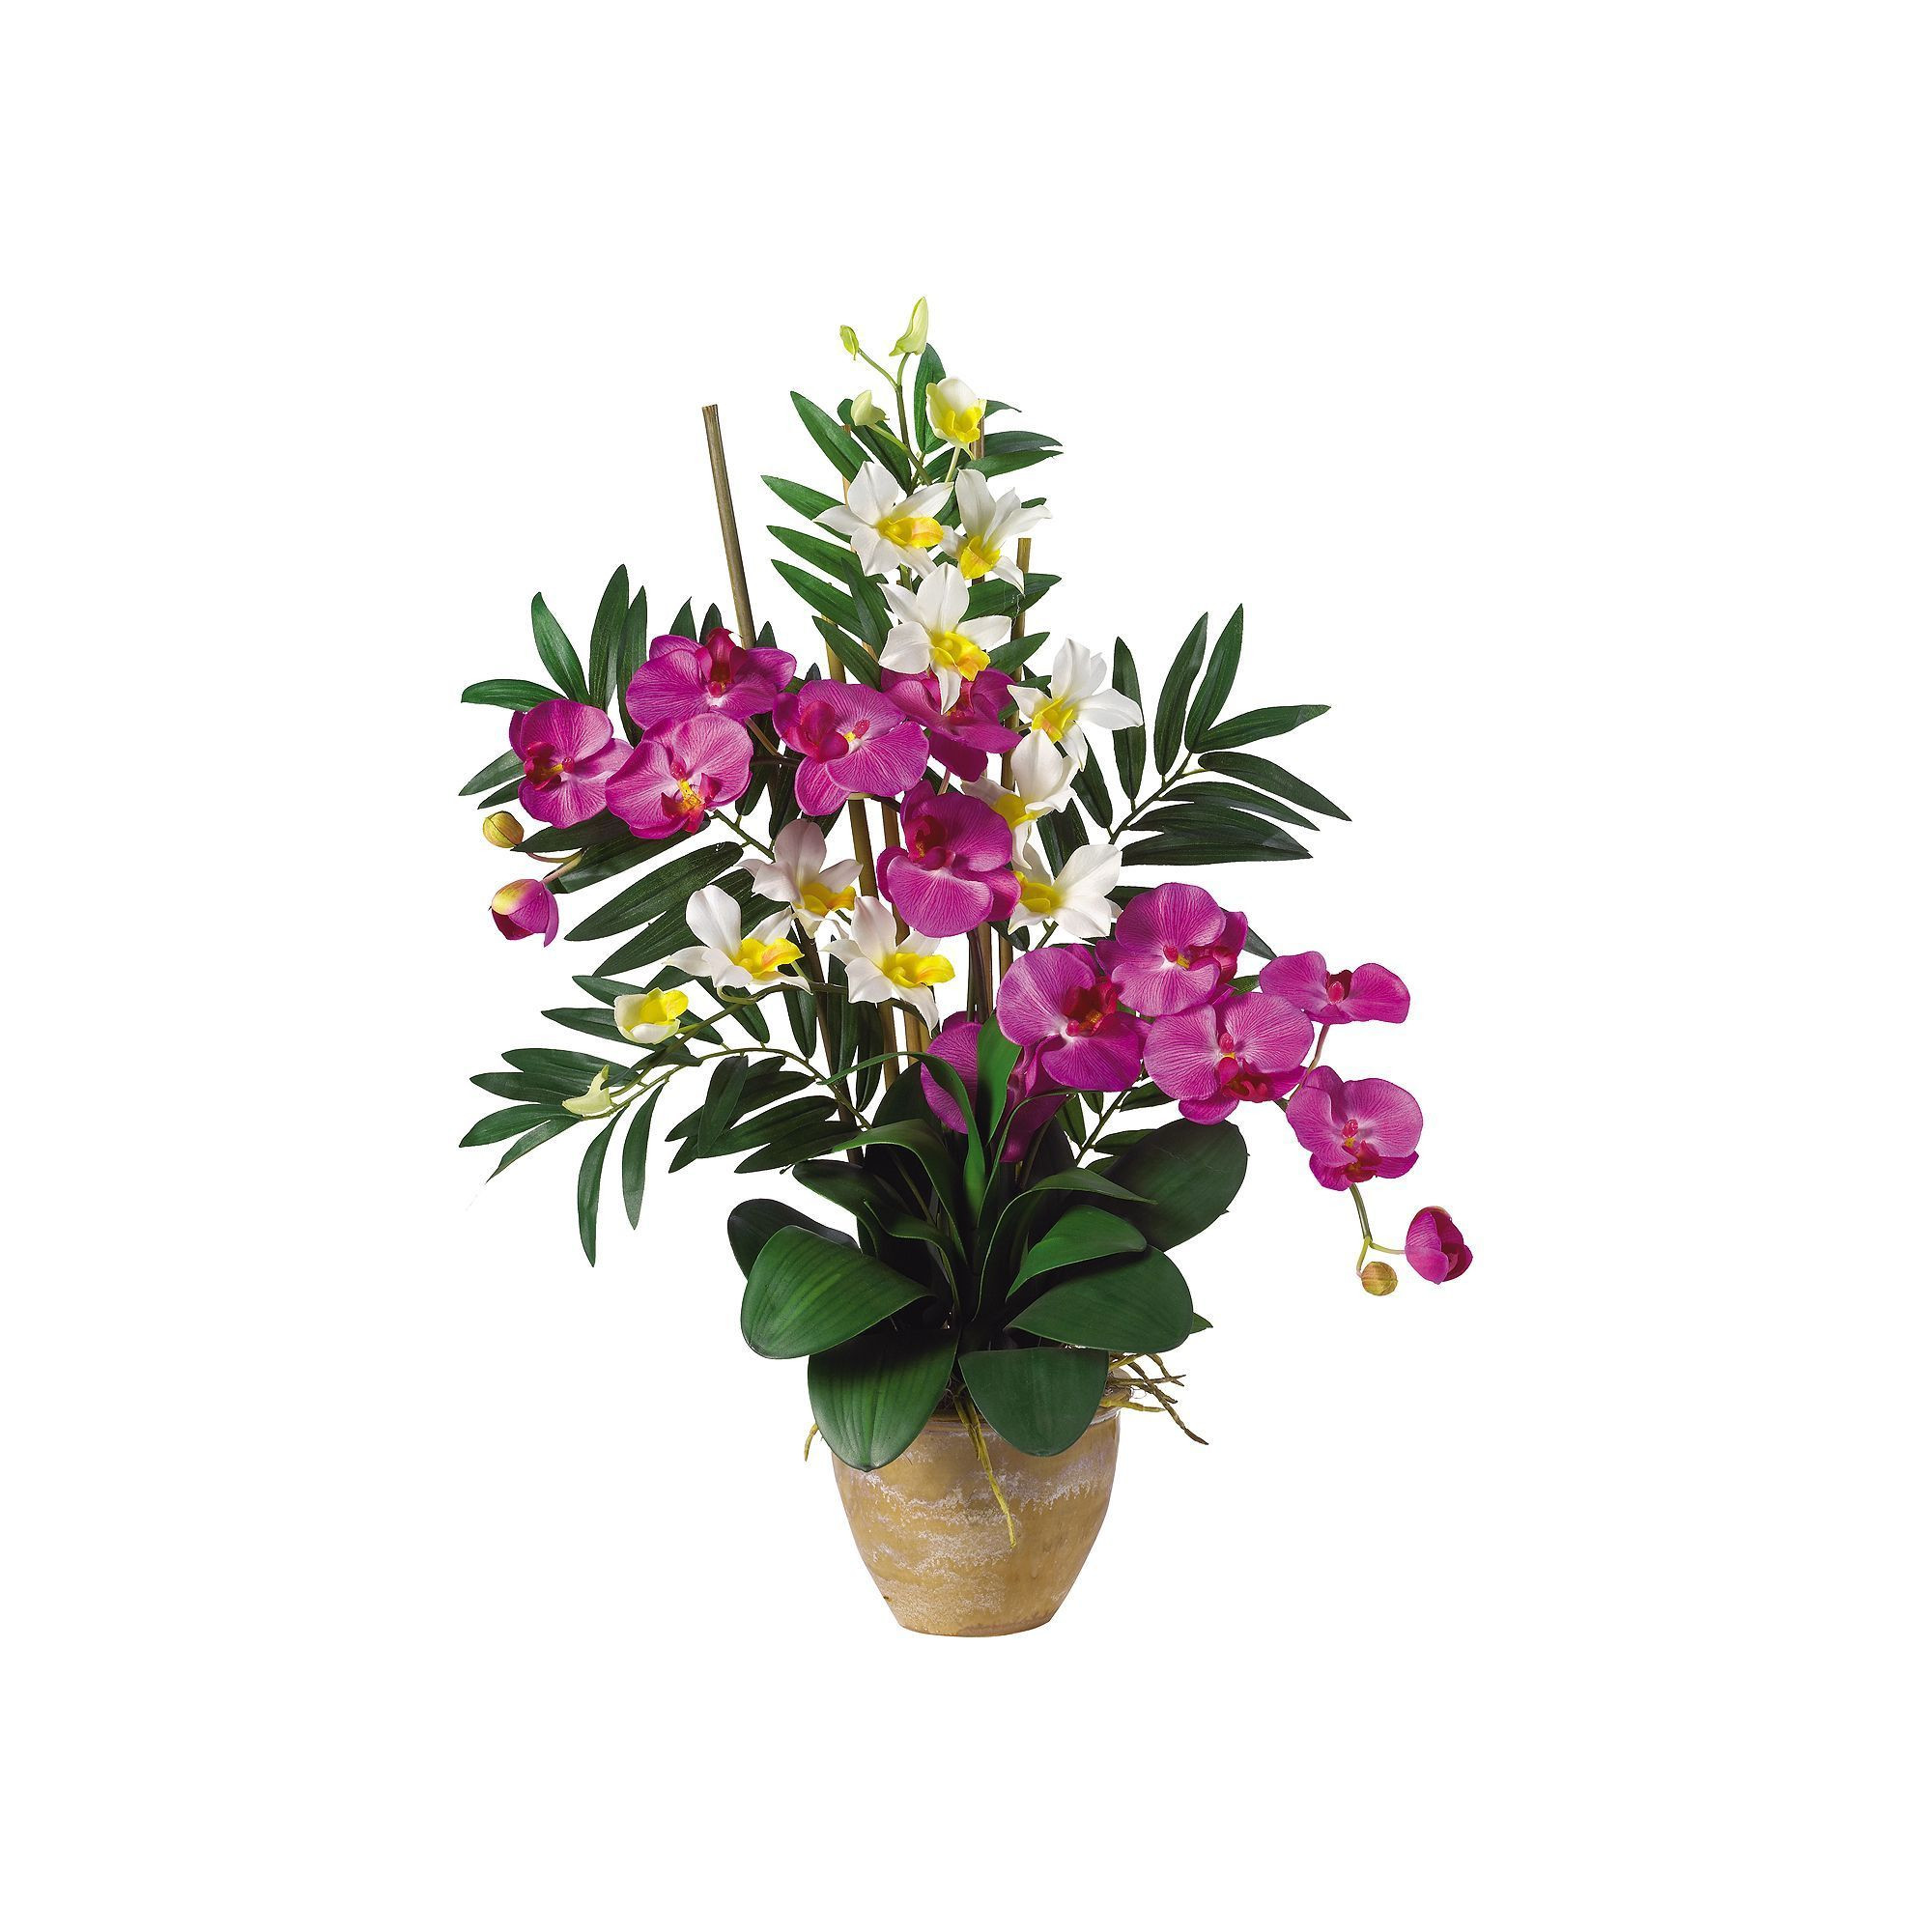 23 Recommended Silver Vase orchids 2021 free download silver vase orchids of nearly natural silk phalaenopsis and dendrobium orchid arrangement inside nearly natural silk phalaenopsis and dendrobium orchid arrangement multicolor